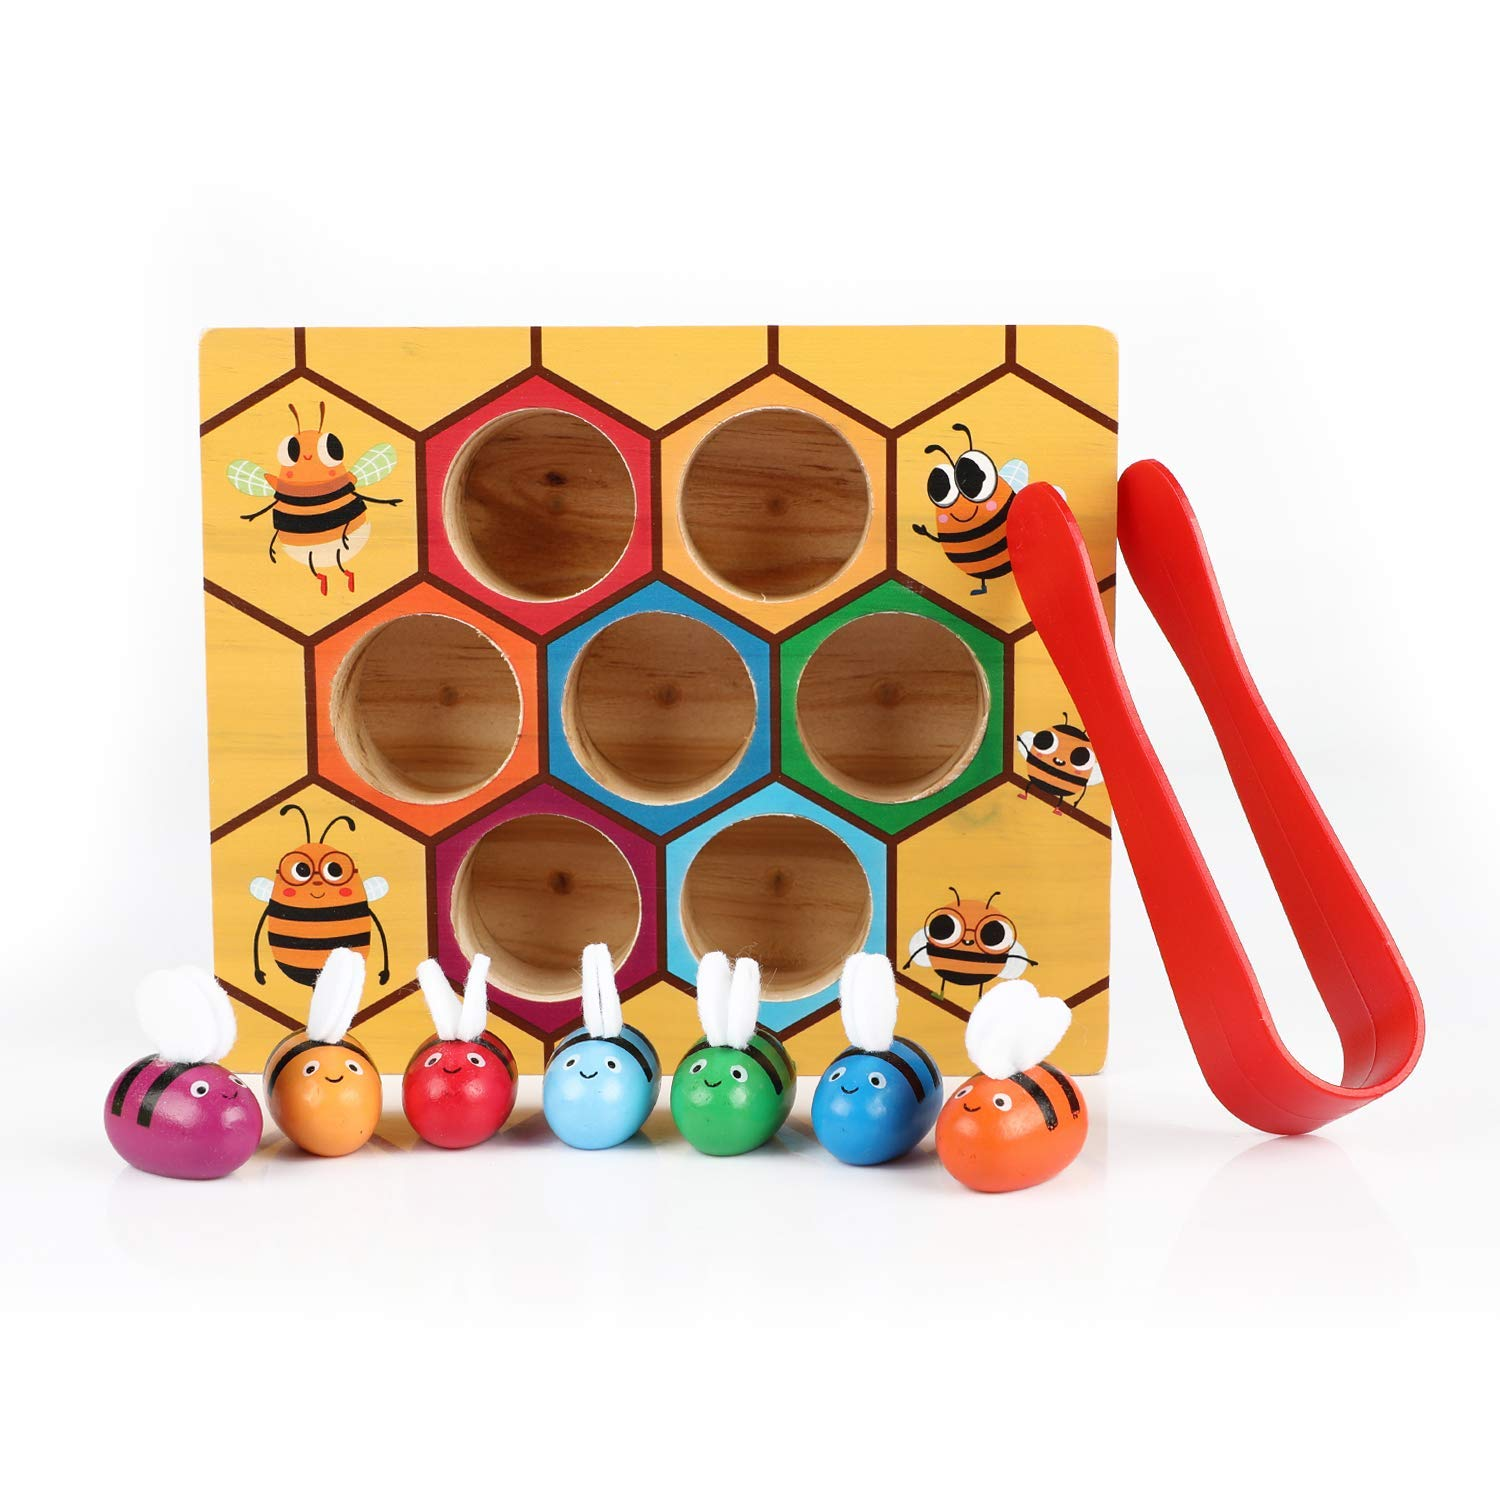 Flymall Wooden Bee Picking Toy Catching Practices for Baby Early Educational Toddler Montessori Game Colorful Beehive Box